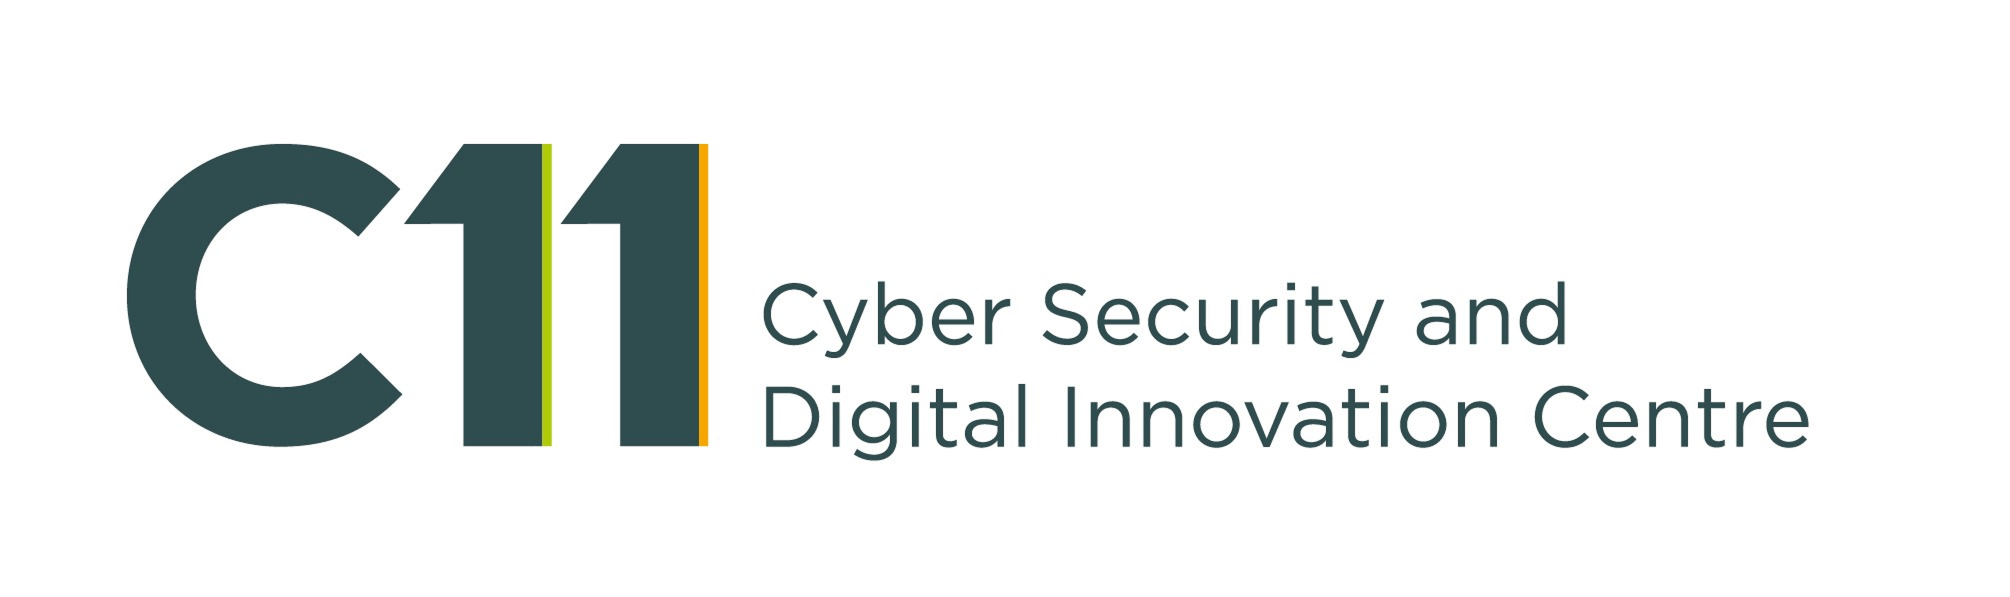 C11 Cyber Security and Digital Innovation Centre - University of Gloucestershire